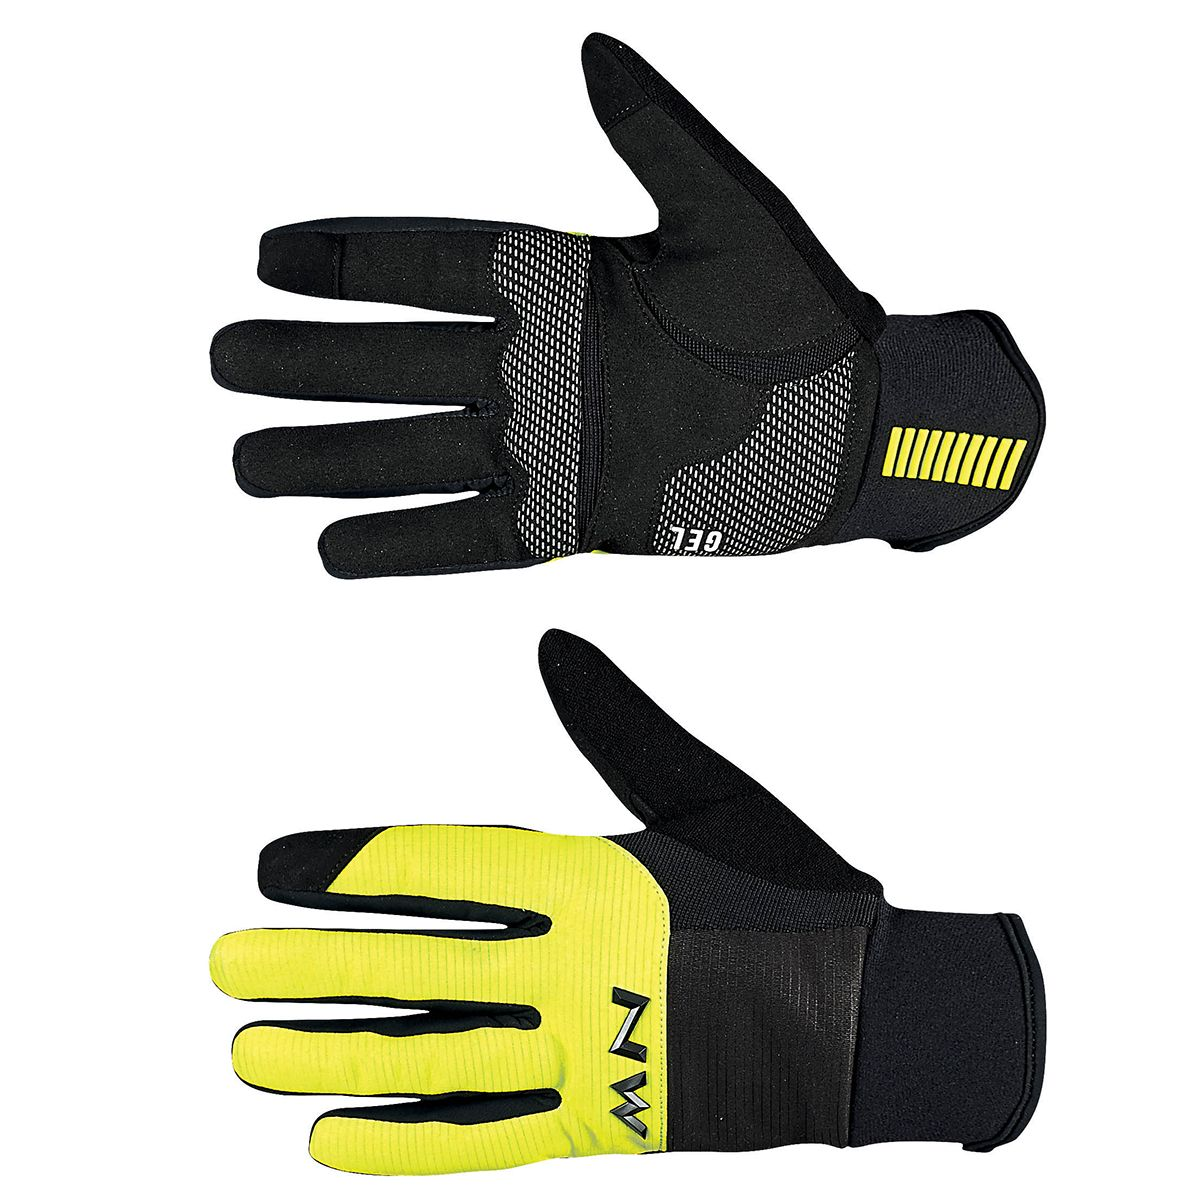 POWER 3 FULL GLOVE Winter Radhandschuhe